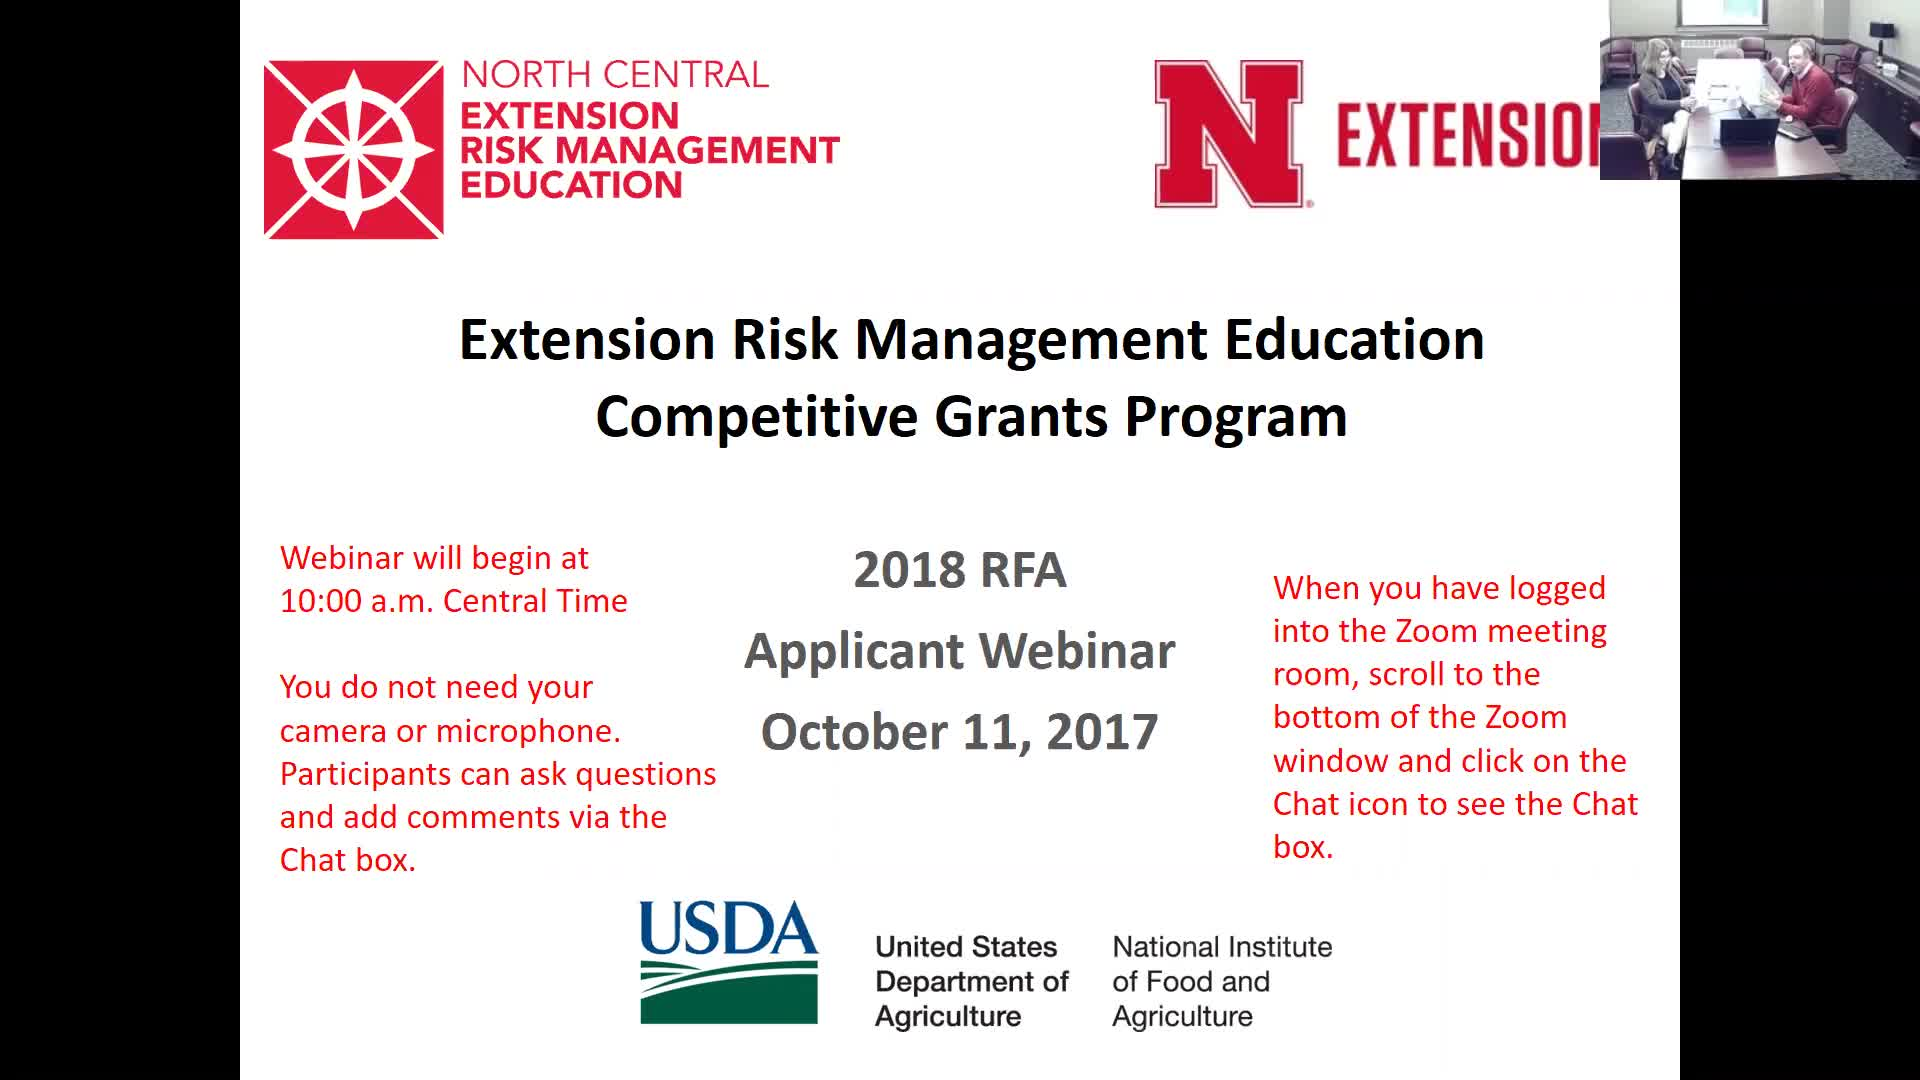 North Central Extension Risk Management Education Center 2018 Applicant Training